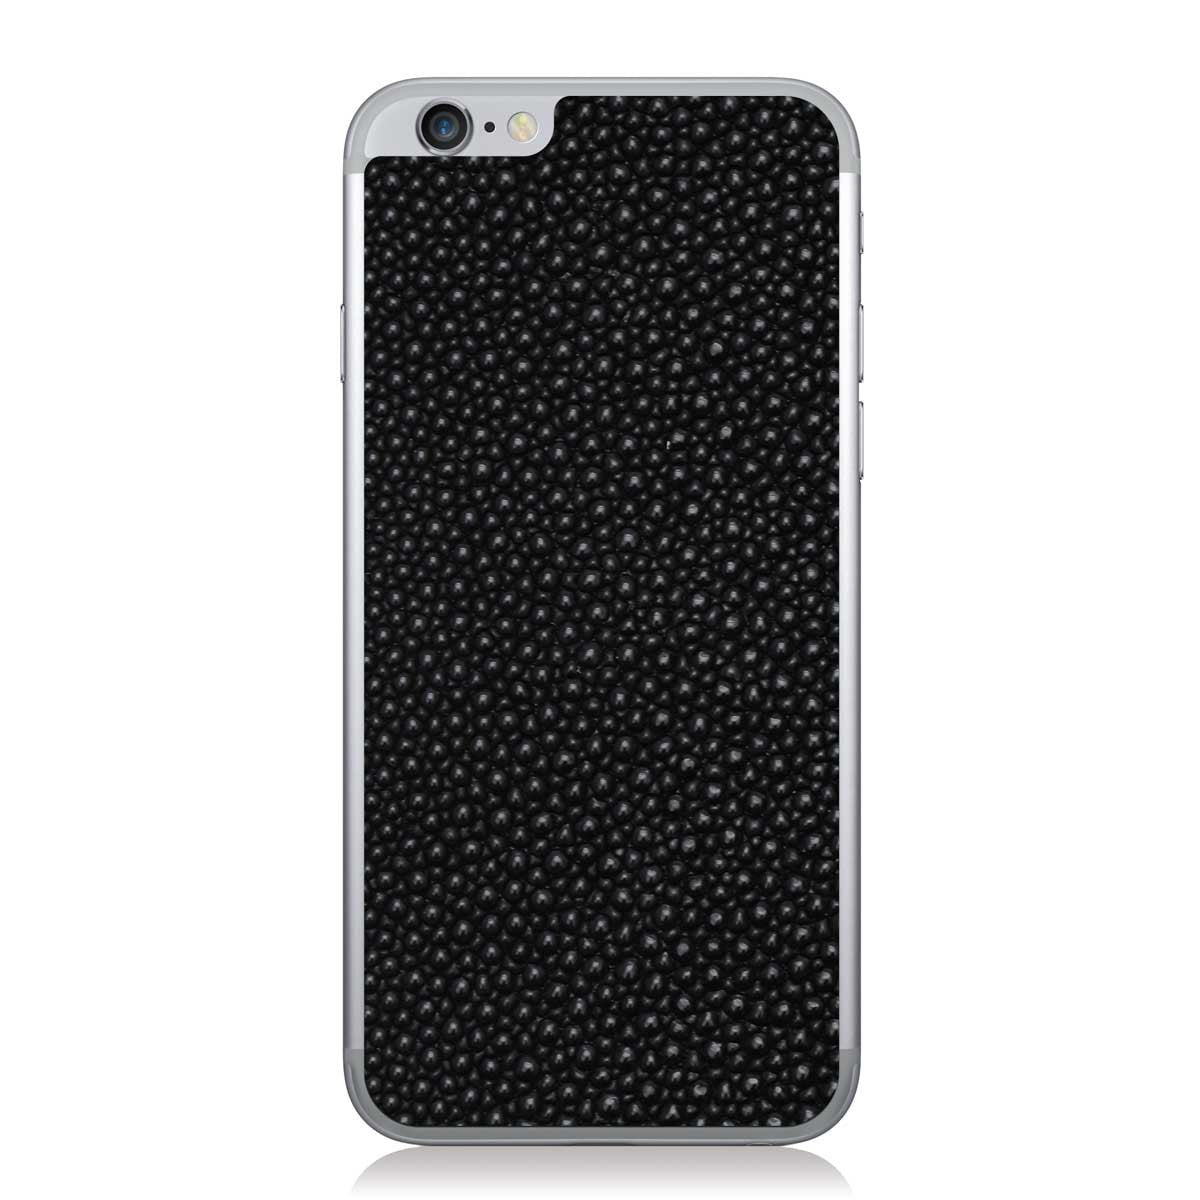 Stingray iPhone 6/6s Leather Skin